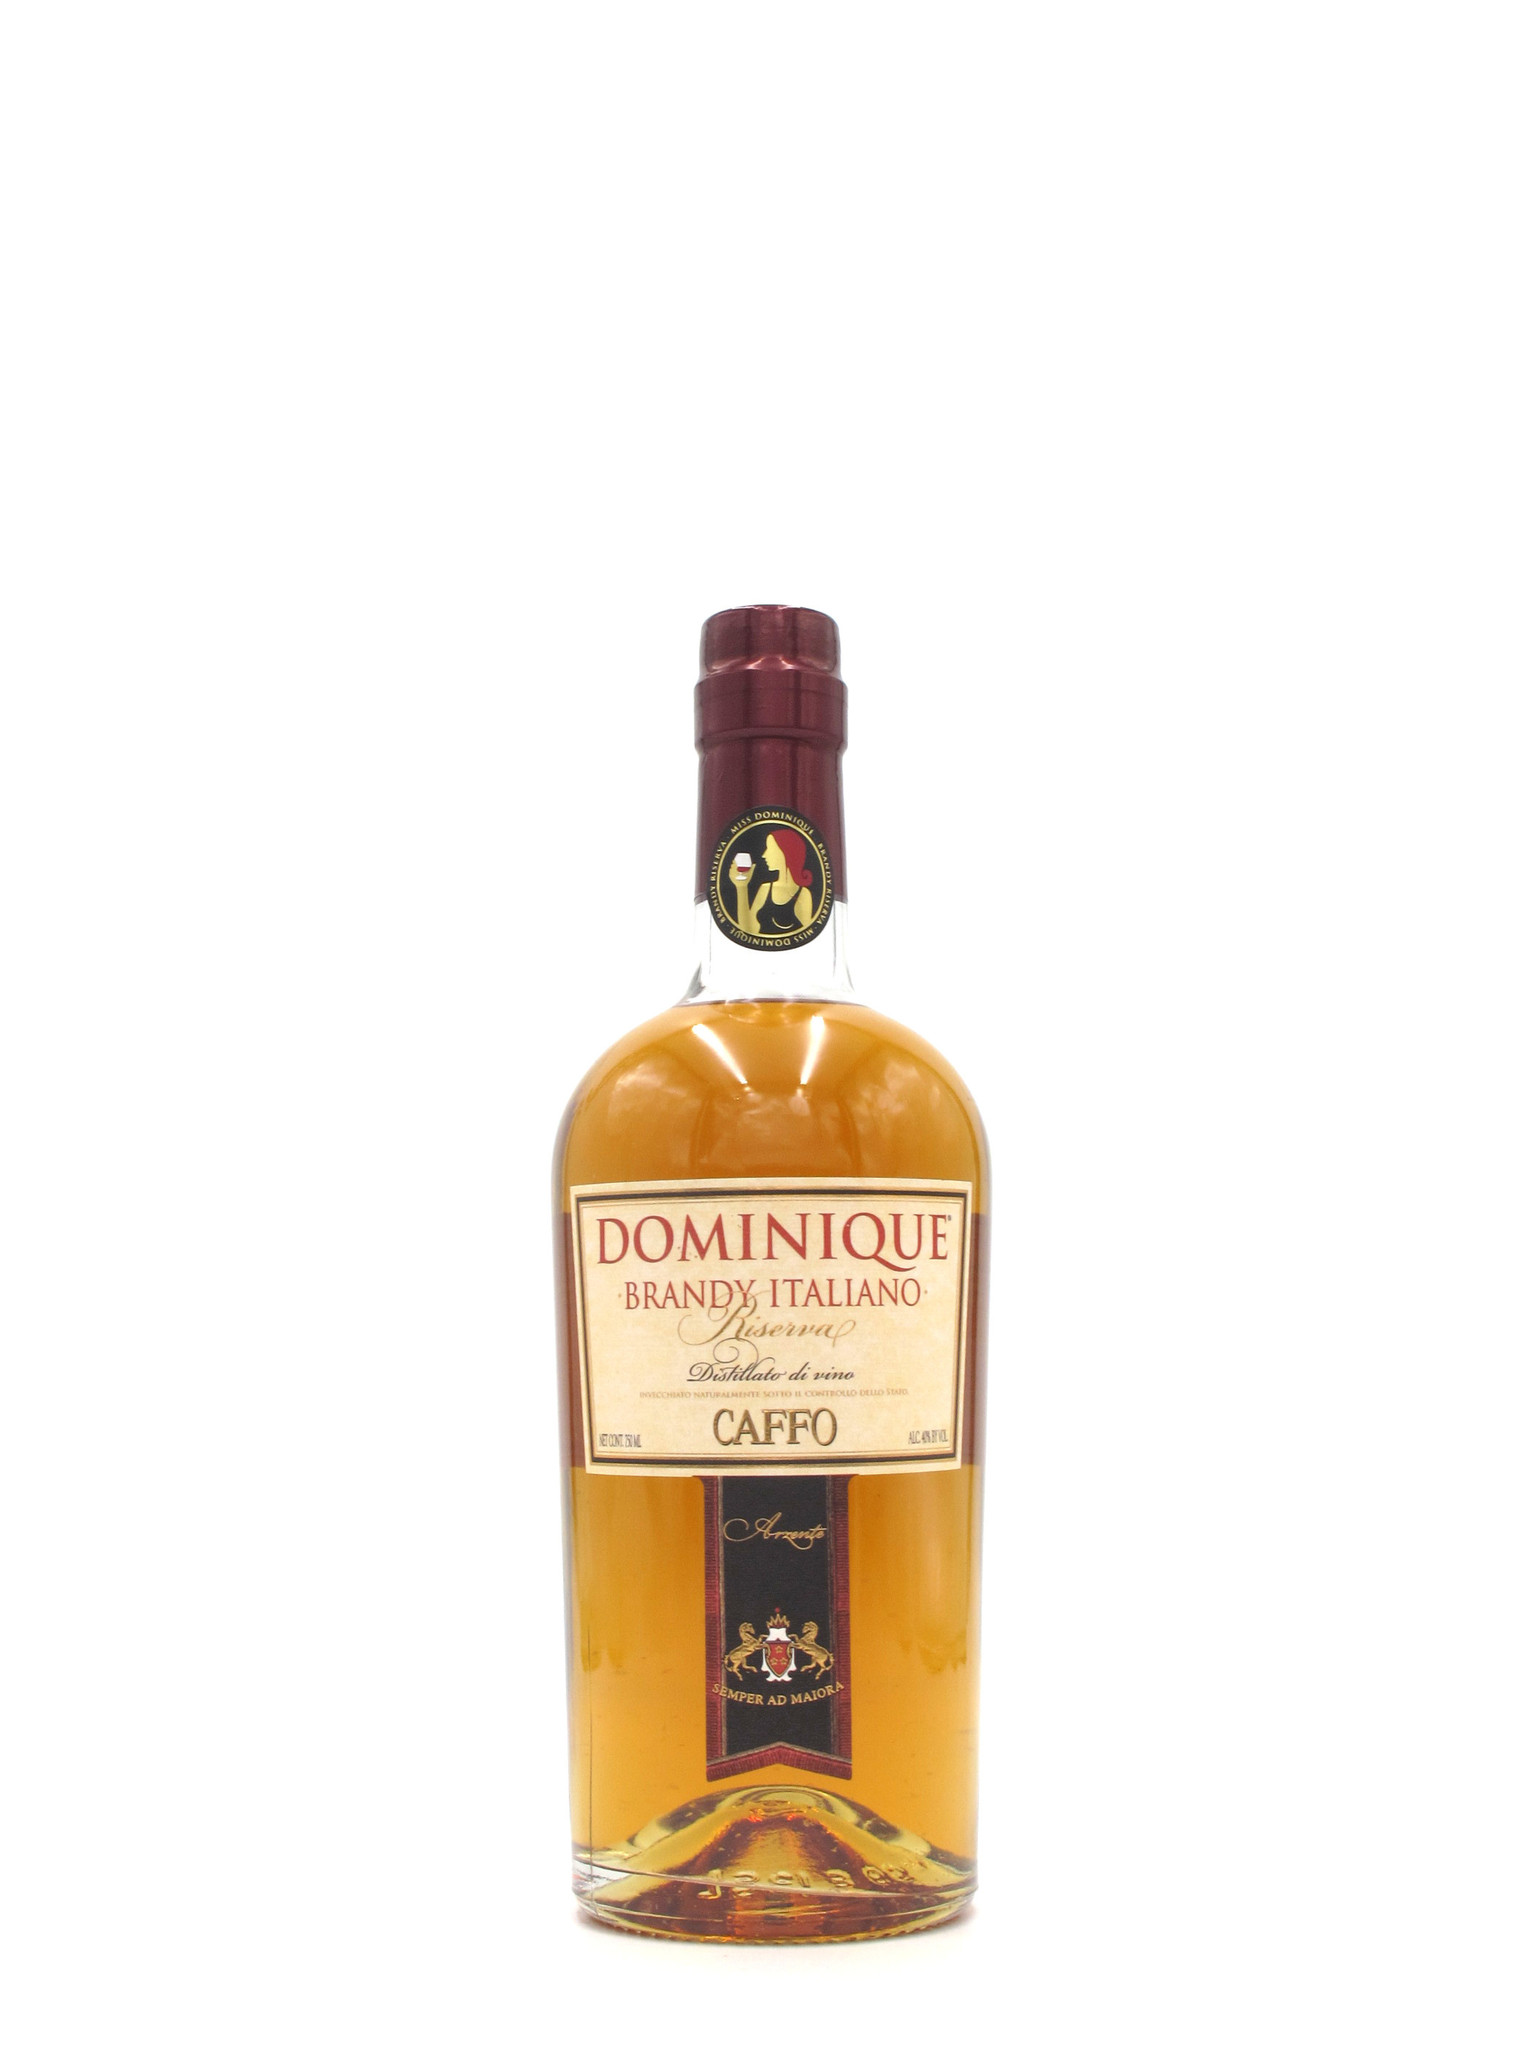 Caffo Caffo Brandy Domenique 750ml